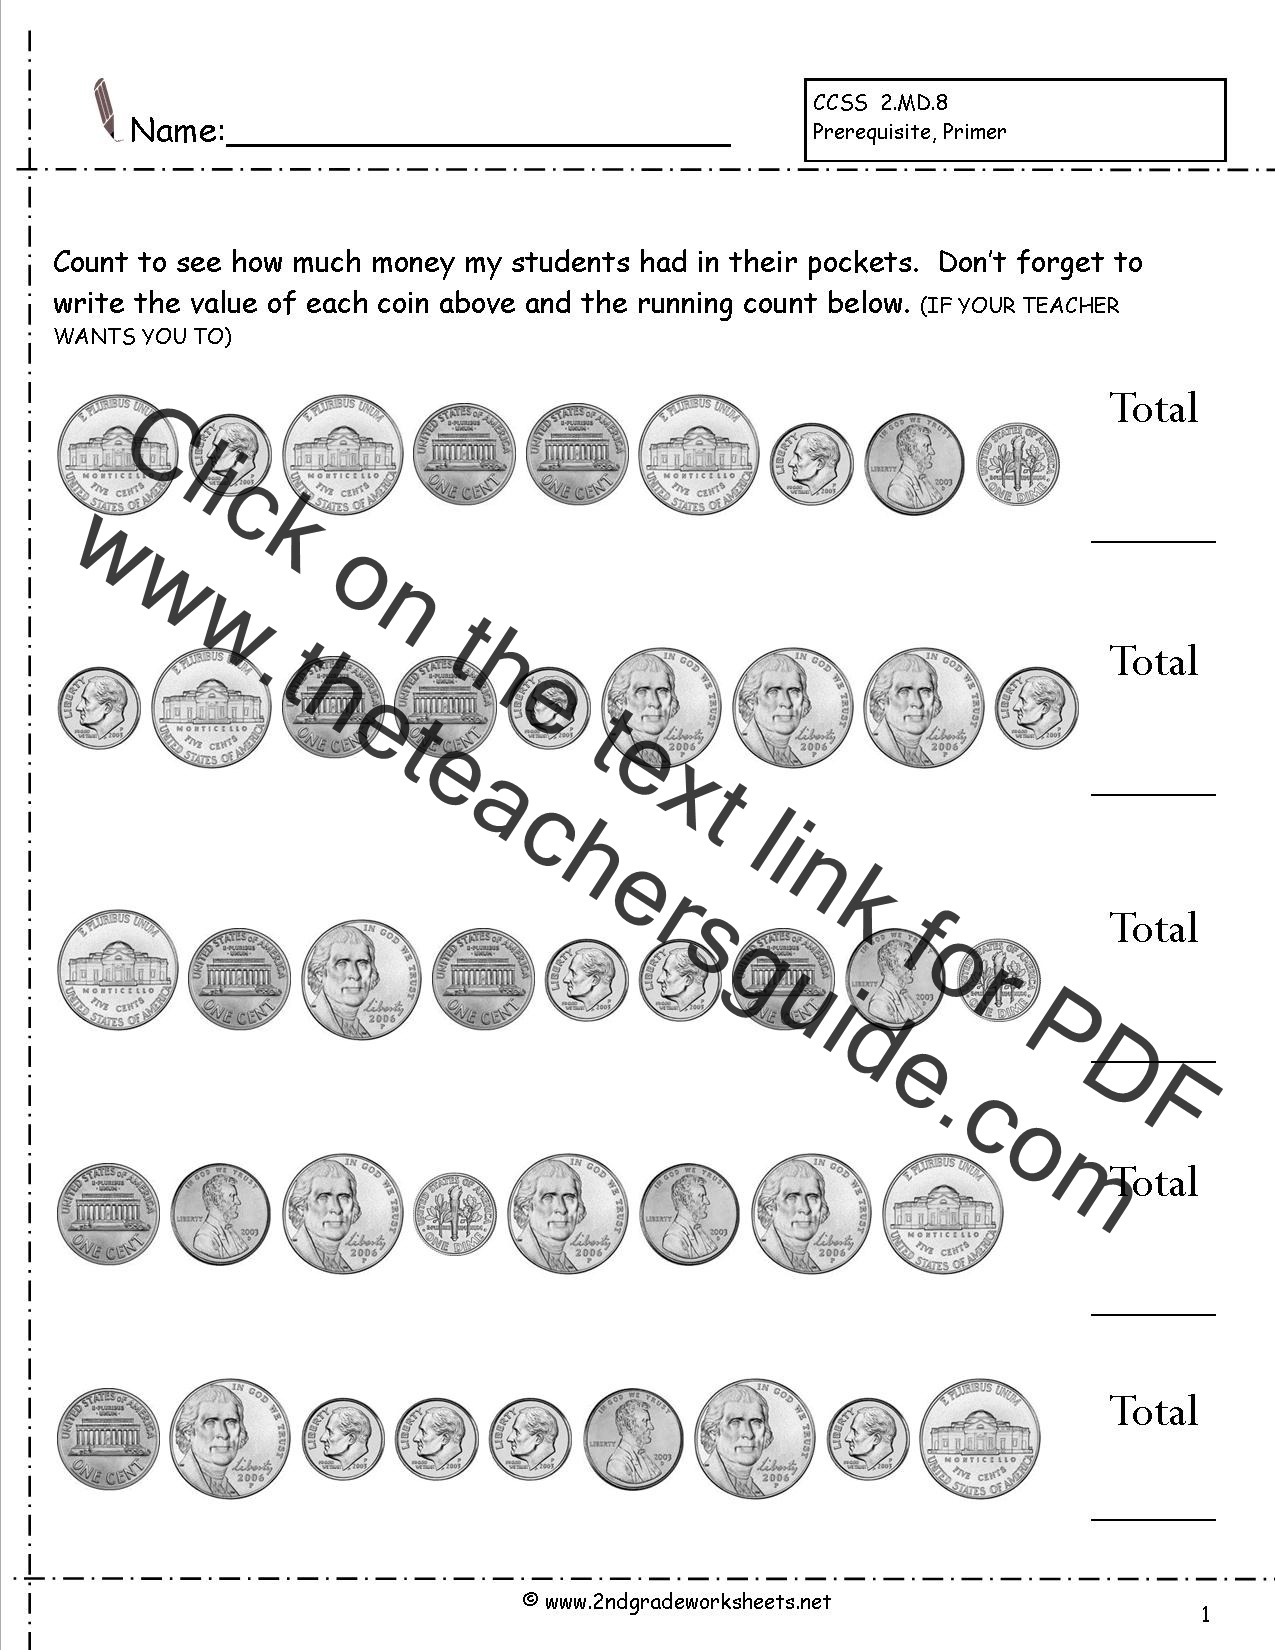 Counting Coins and Money Worksheets and Printouts – Coin Recognition Worksheets